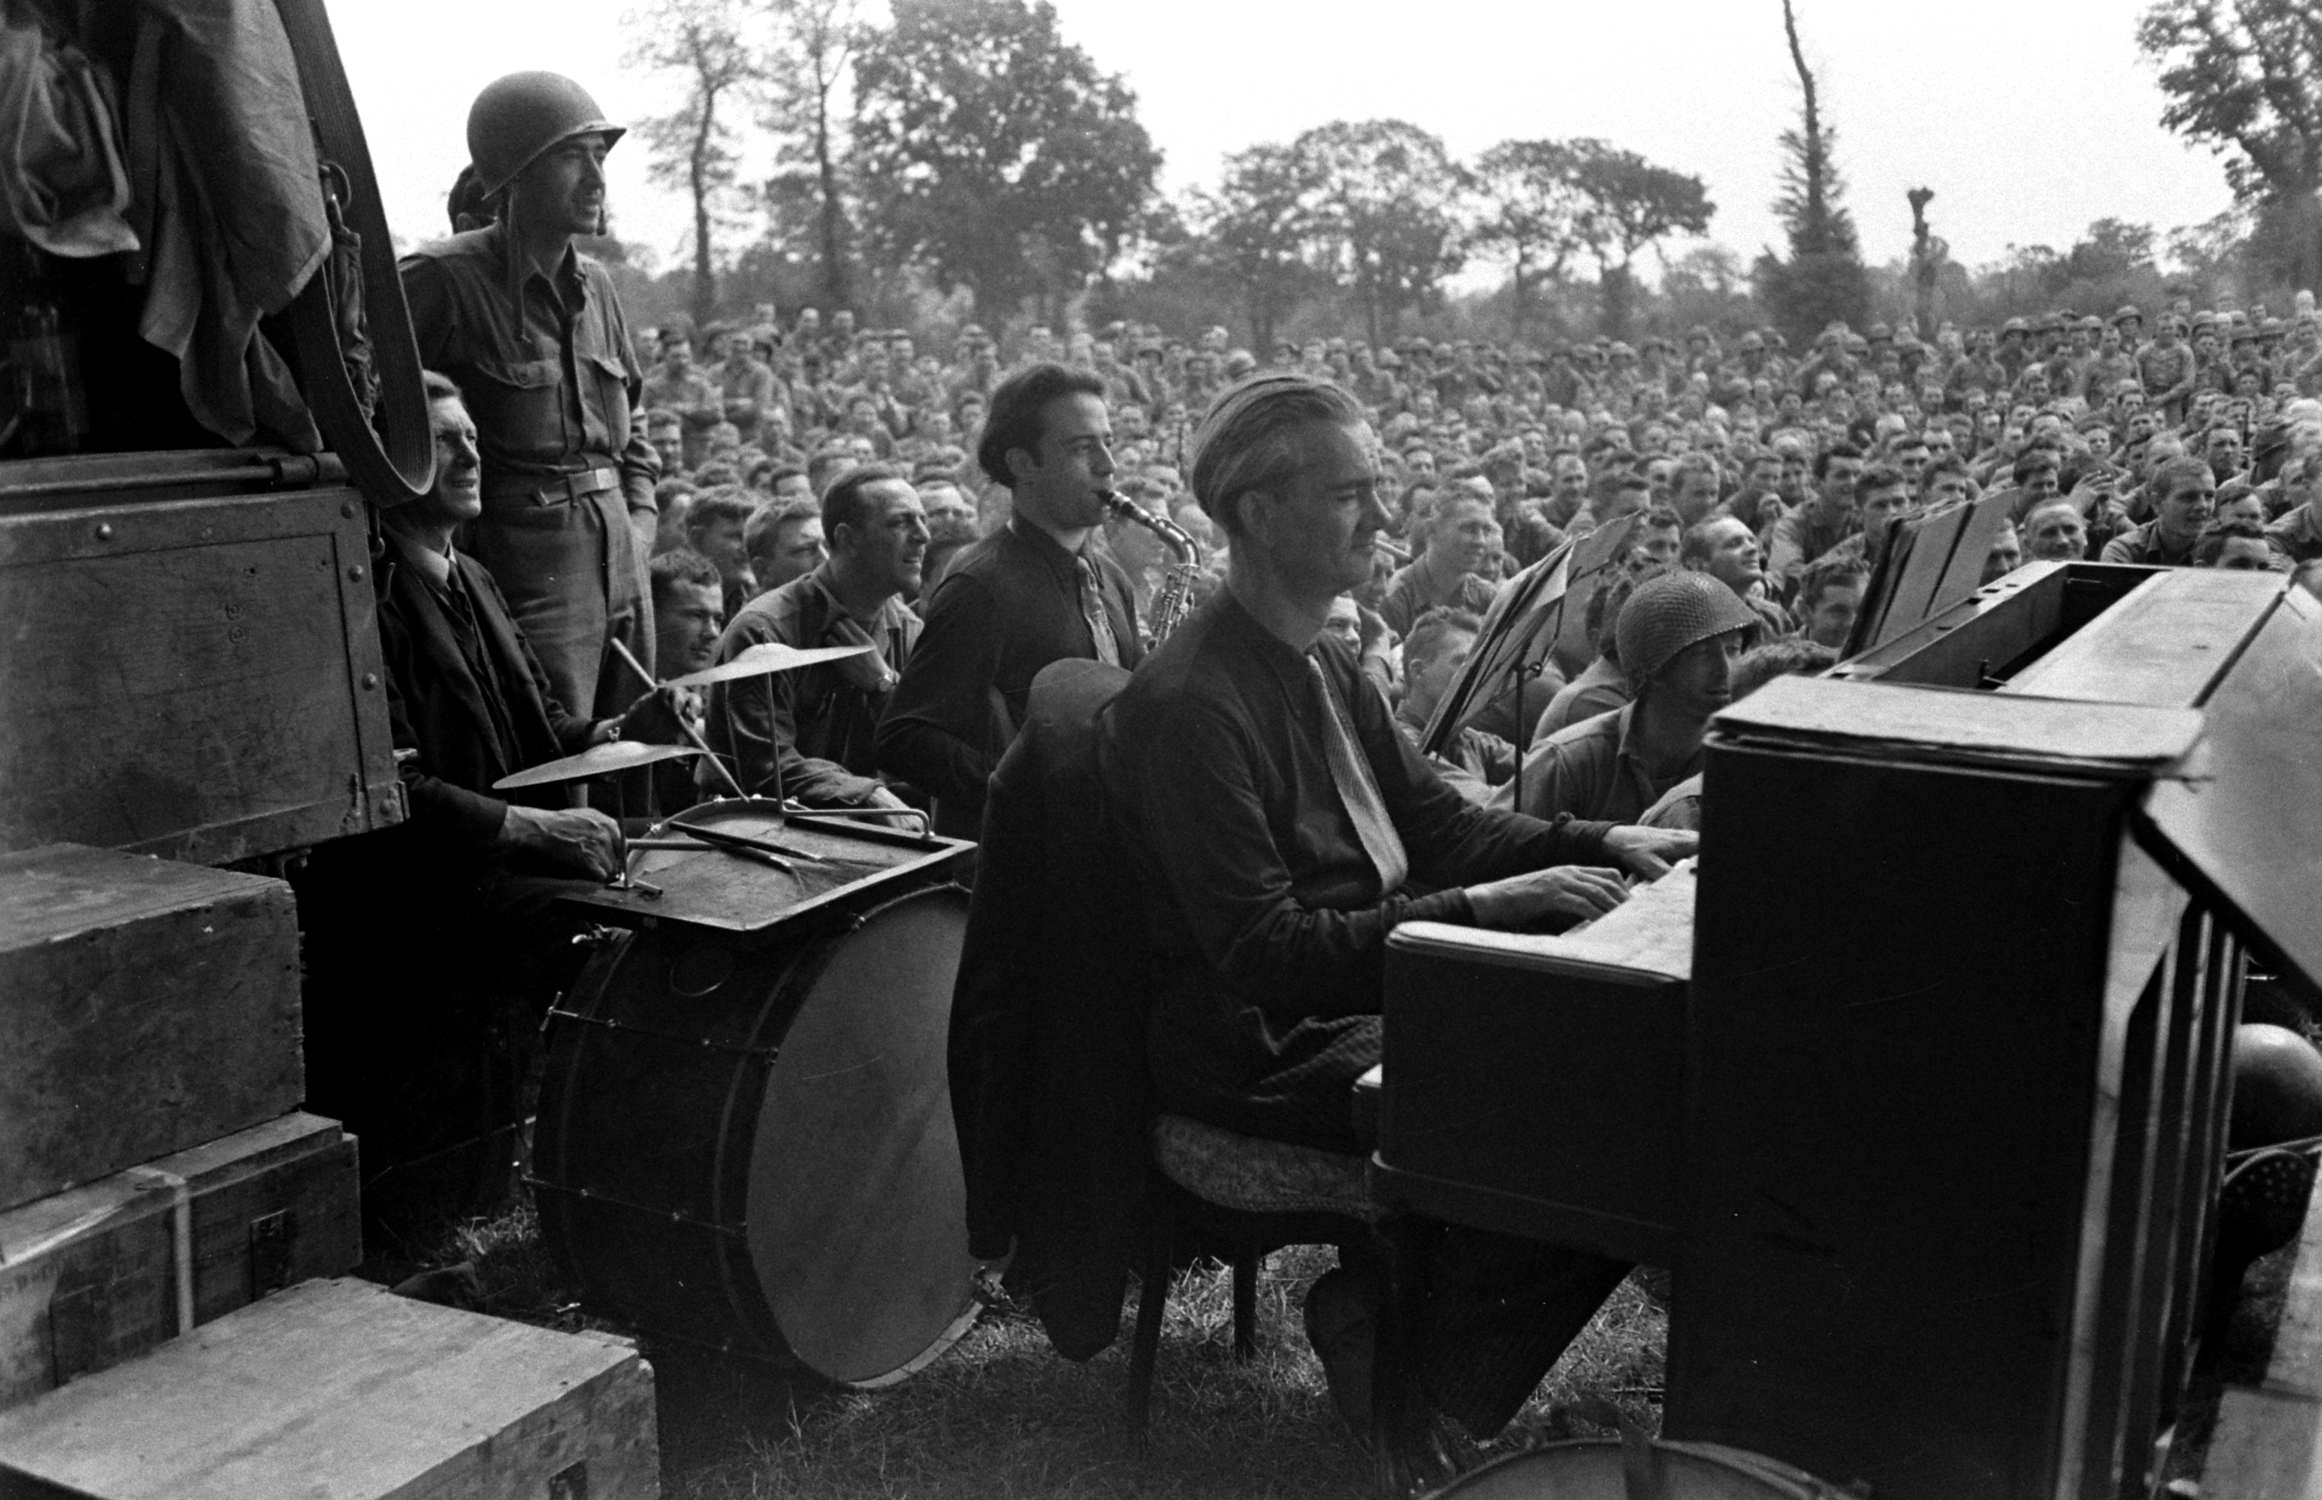 Scene at show for U.S. troops after D-Day, Normandy, 1944.